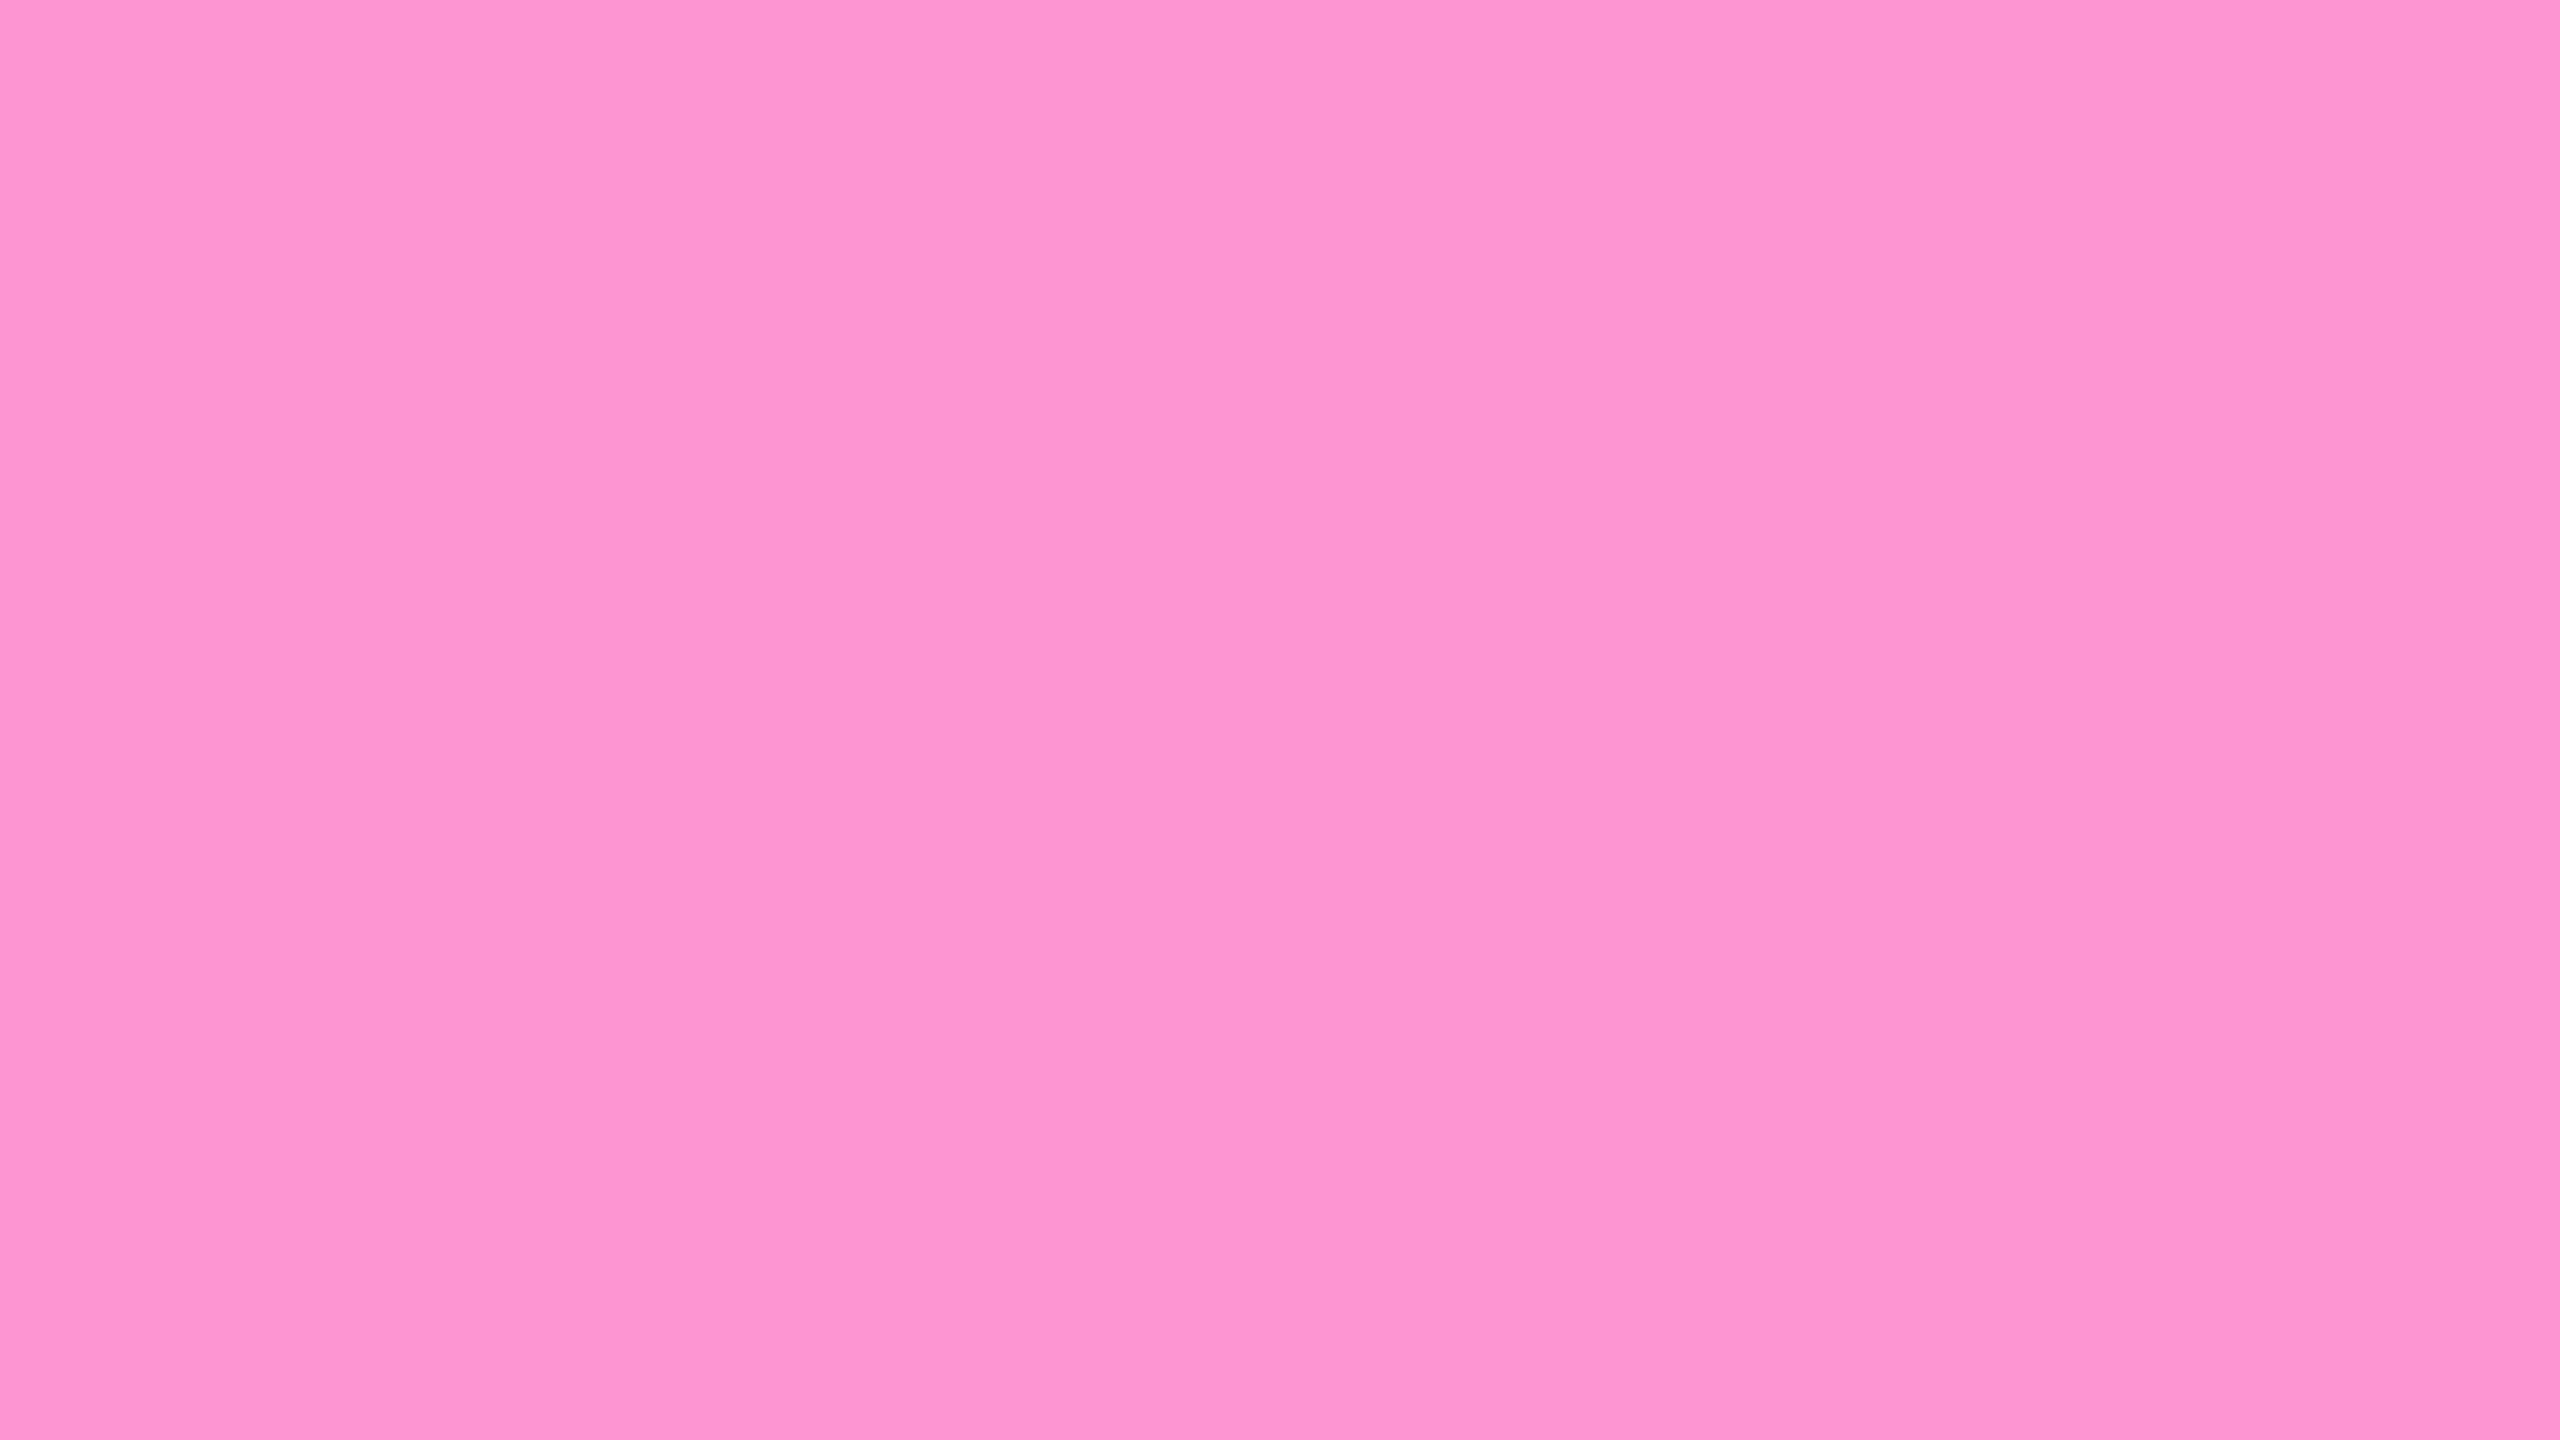 Res: 2560x1440, this Light Pink Desktop Wallpaper is easy Just save the wallpaper P4gMxti2